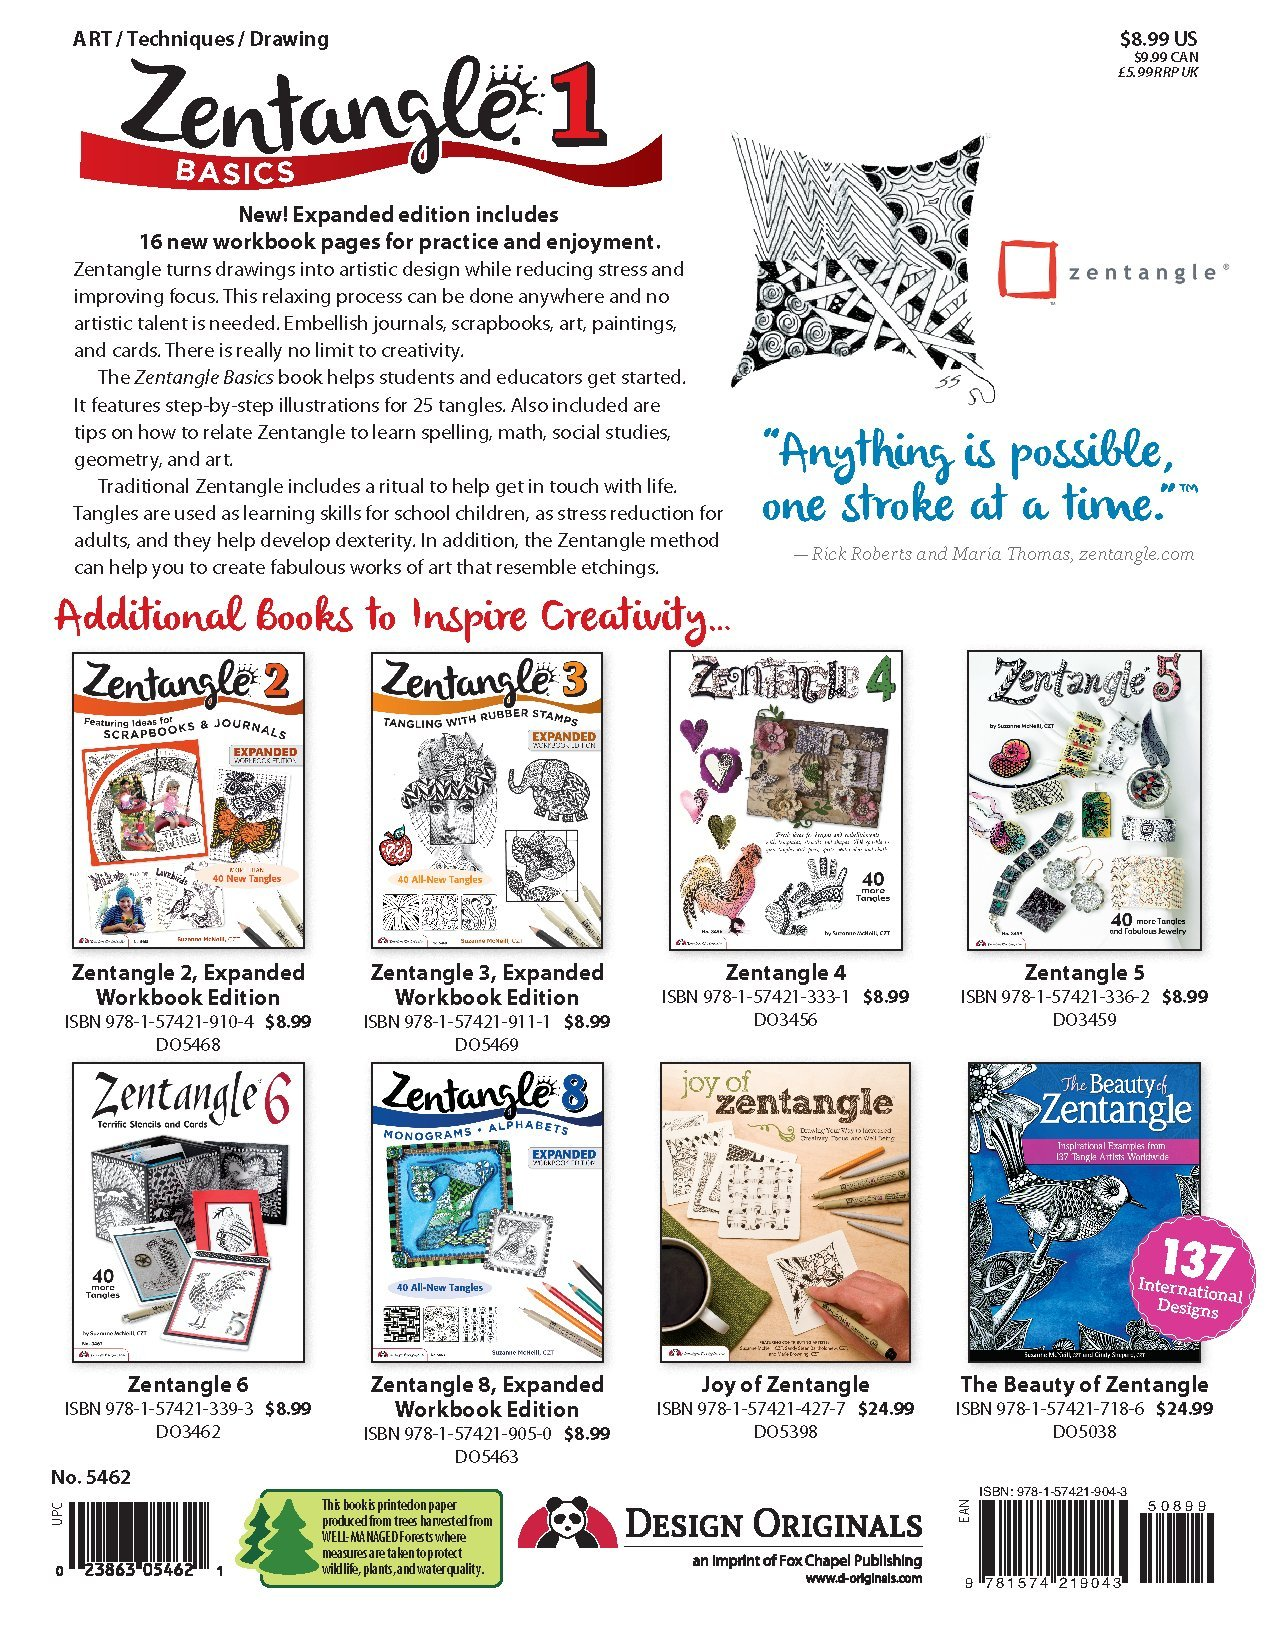 Zentangle Basics, Expanded Workbook Edition: A Creative Art Form Where All  You Need is Paper, Pencil, & Pen (Design Originals) 25 Original Tangles, ...